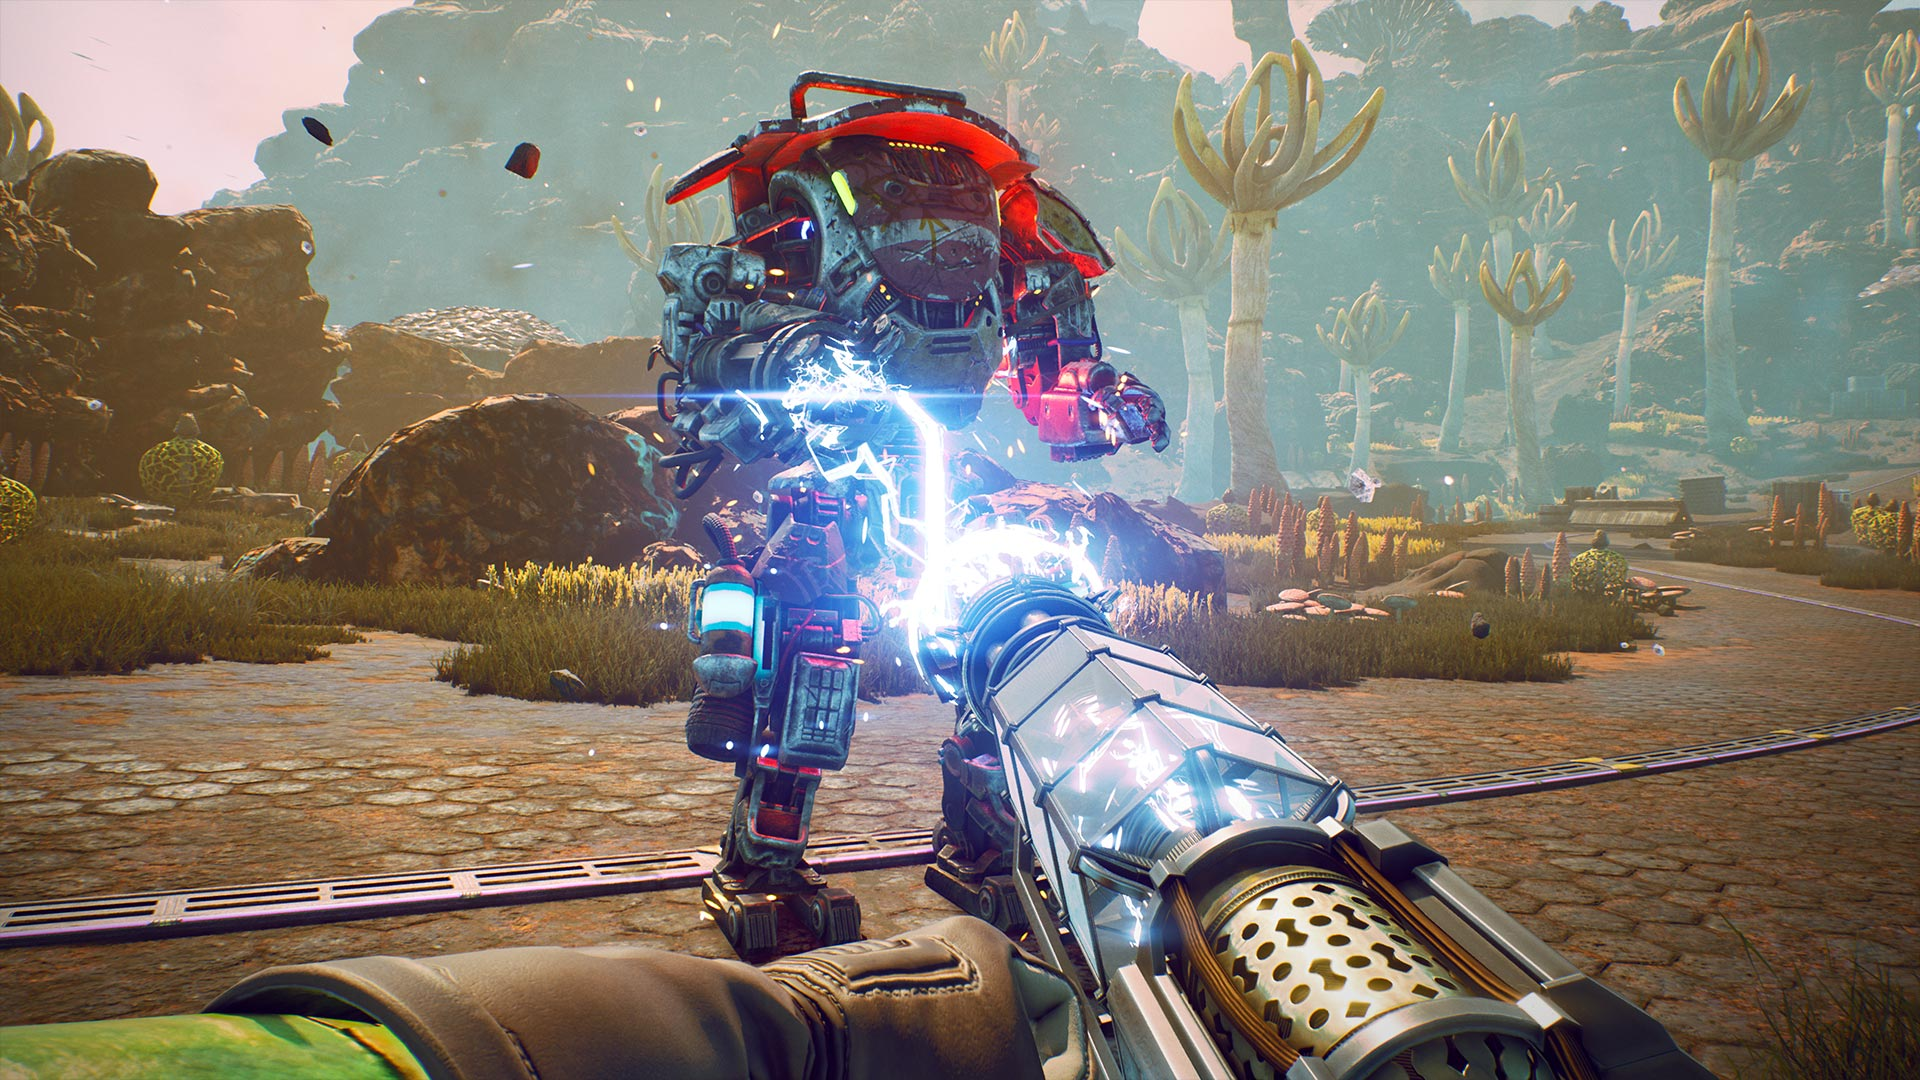 tow presstour shock cannon 1920x1080 - Recensione The Outer Worlds